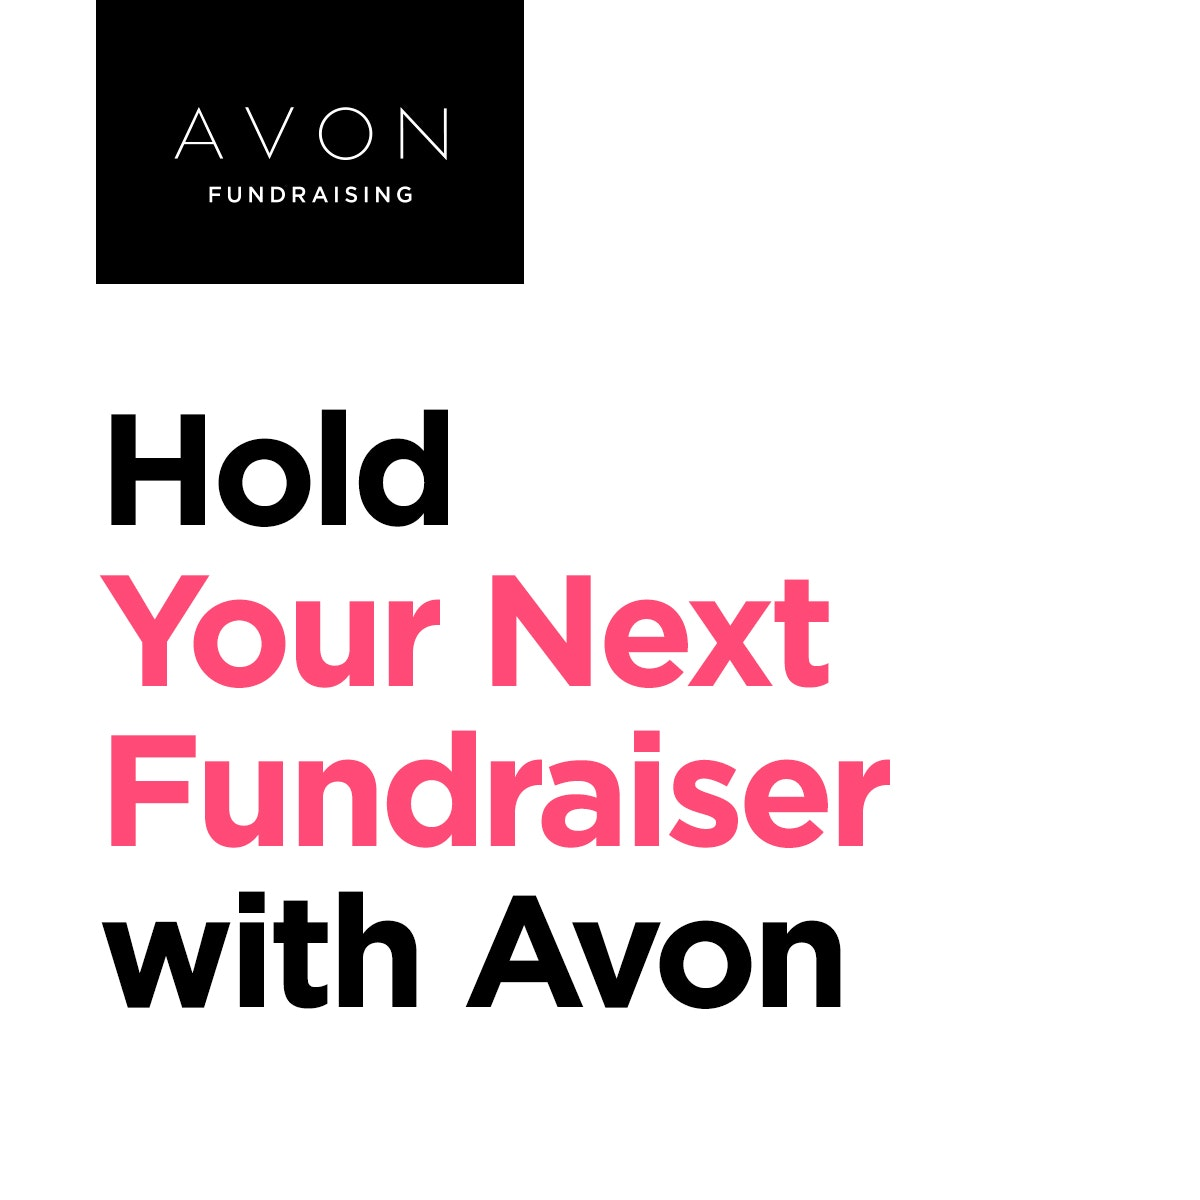 Hold Your Next Fundraiser with Avon